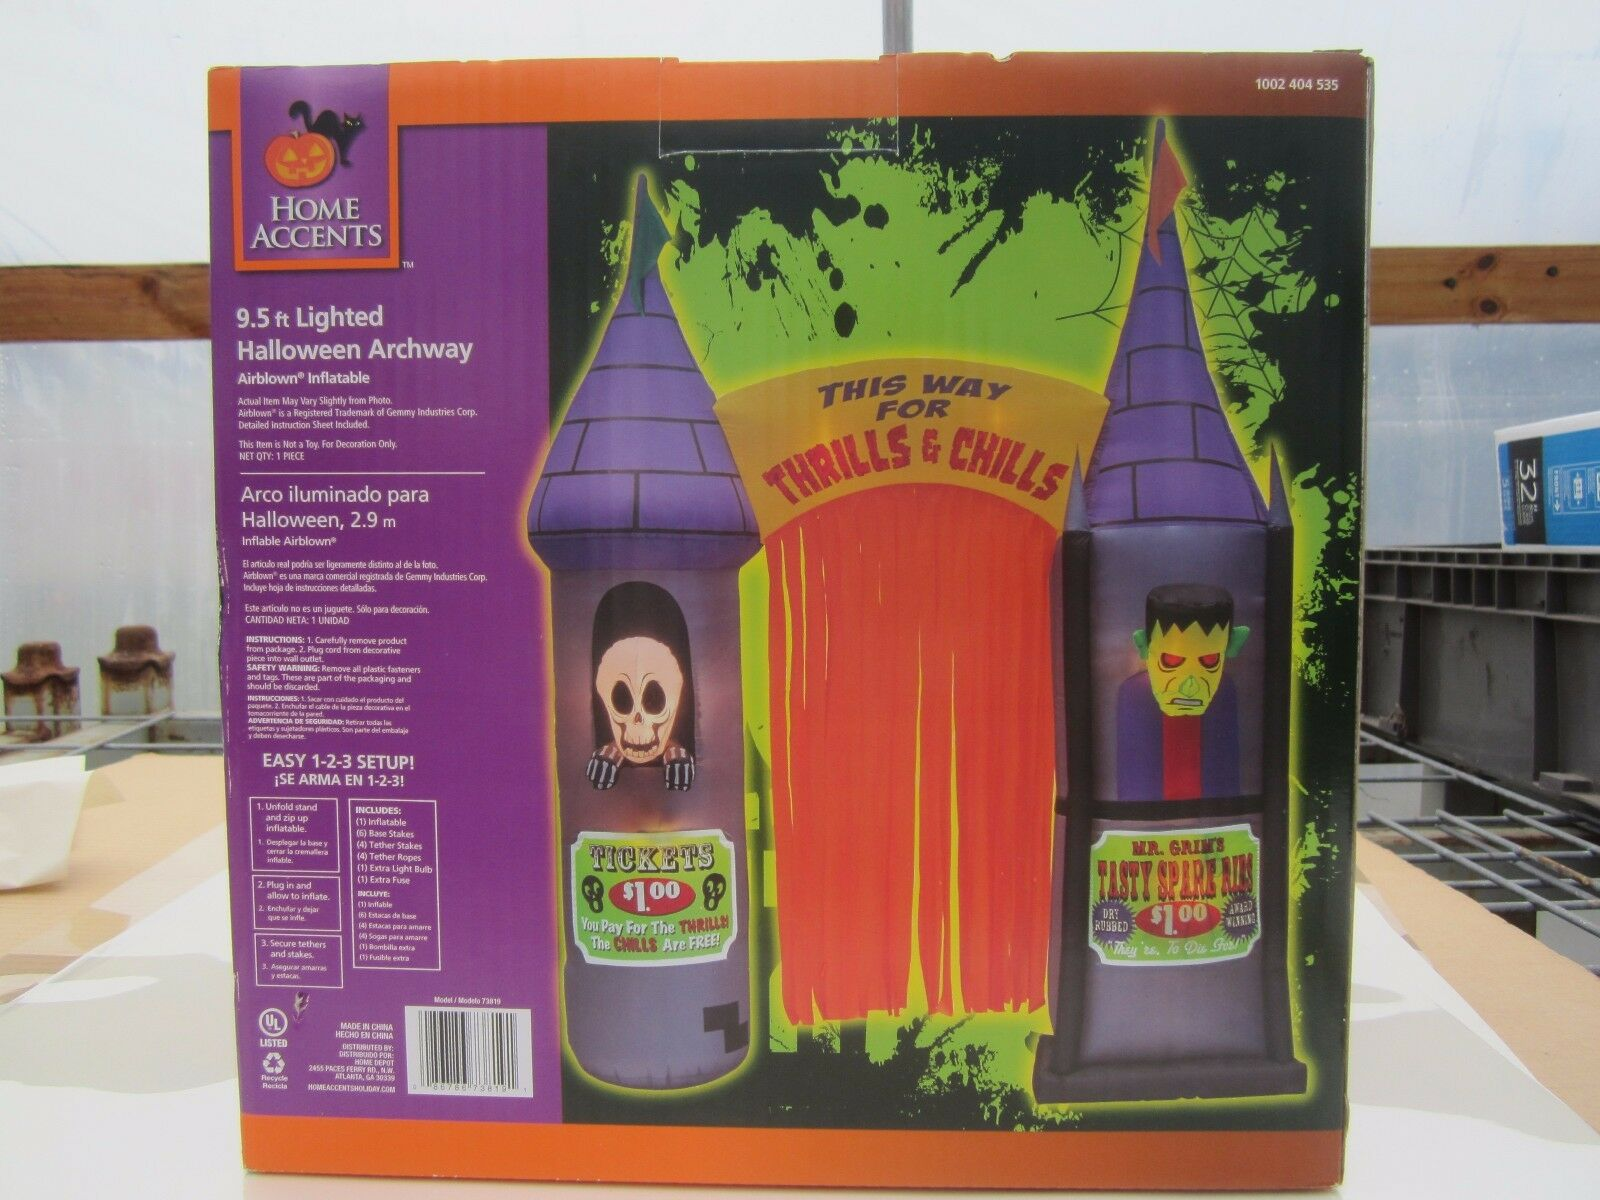 Home Accents Holiday 9.5 Ft. Halloween Inflatable Archway Horrors House Decor